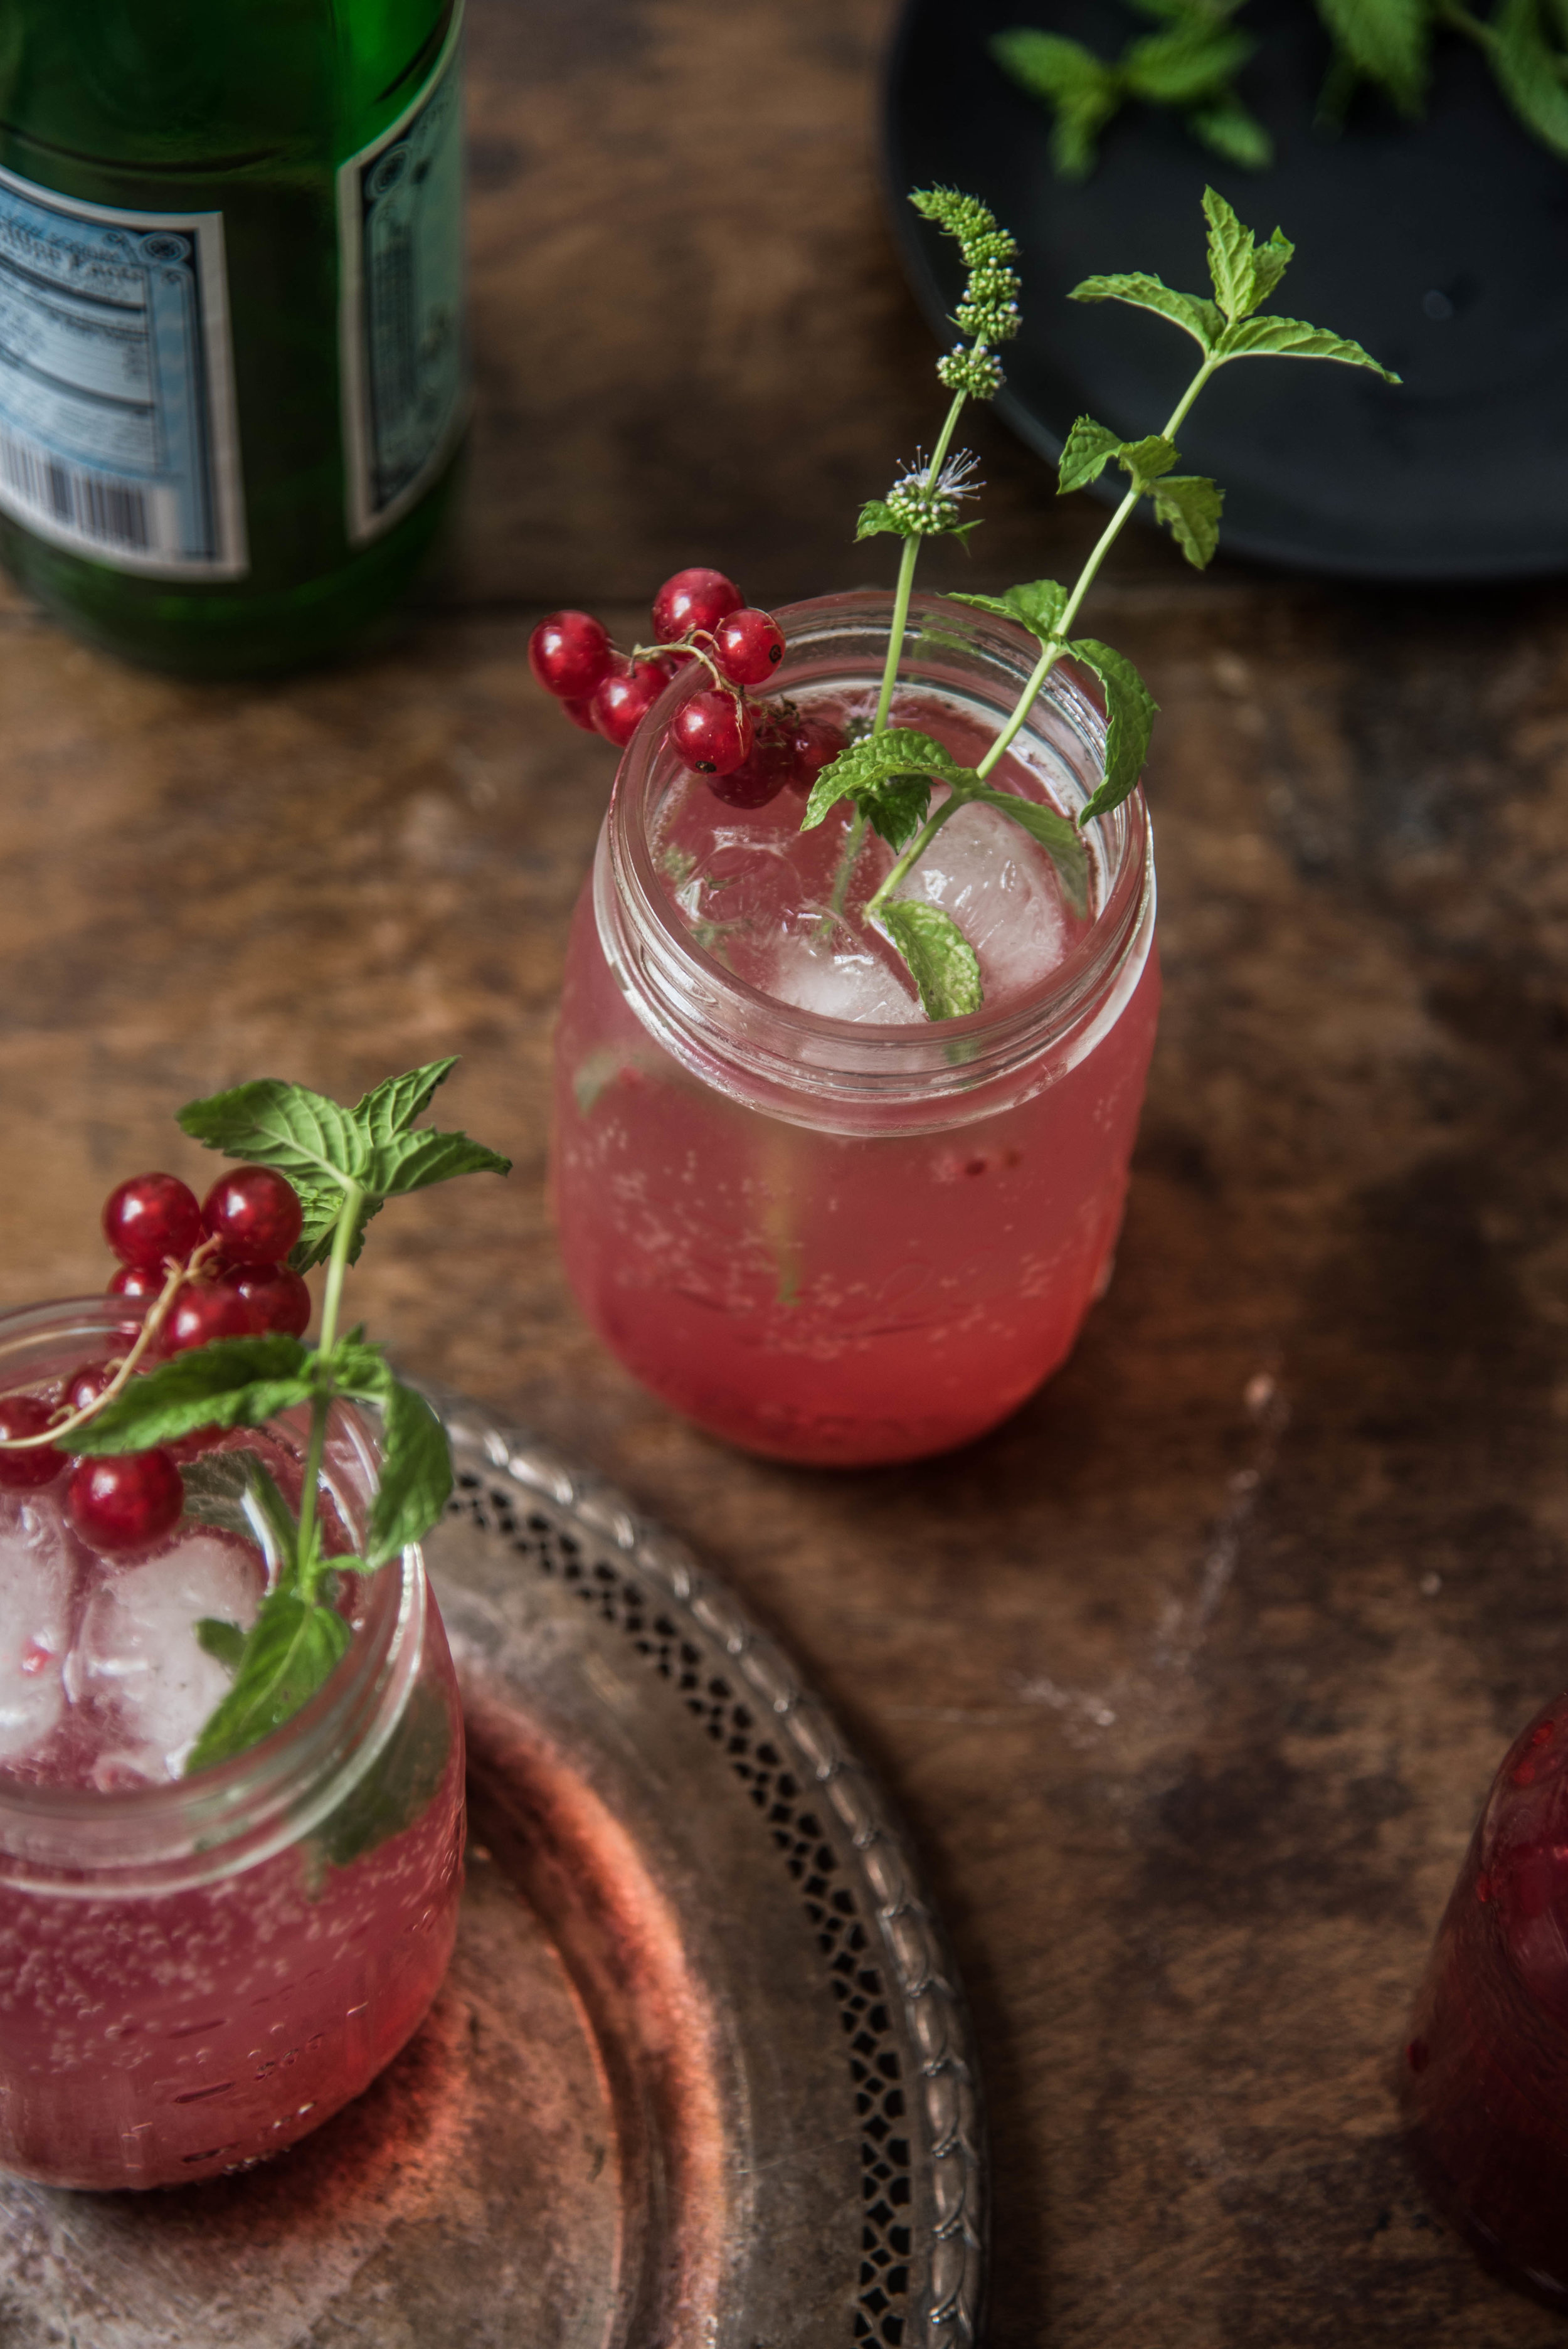 ROSE & IVY Journal At the Market Red Currants + Red Currant Vanilla Spritzer